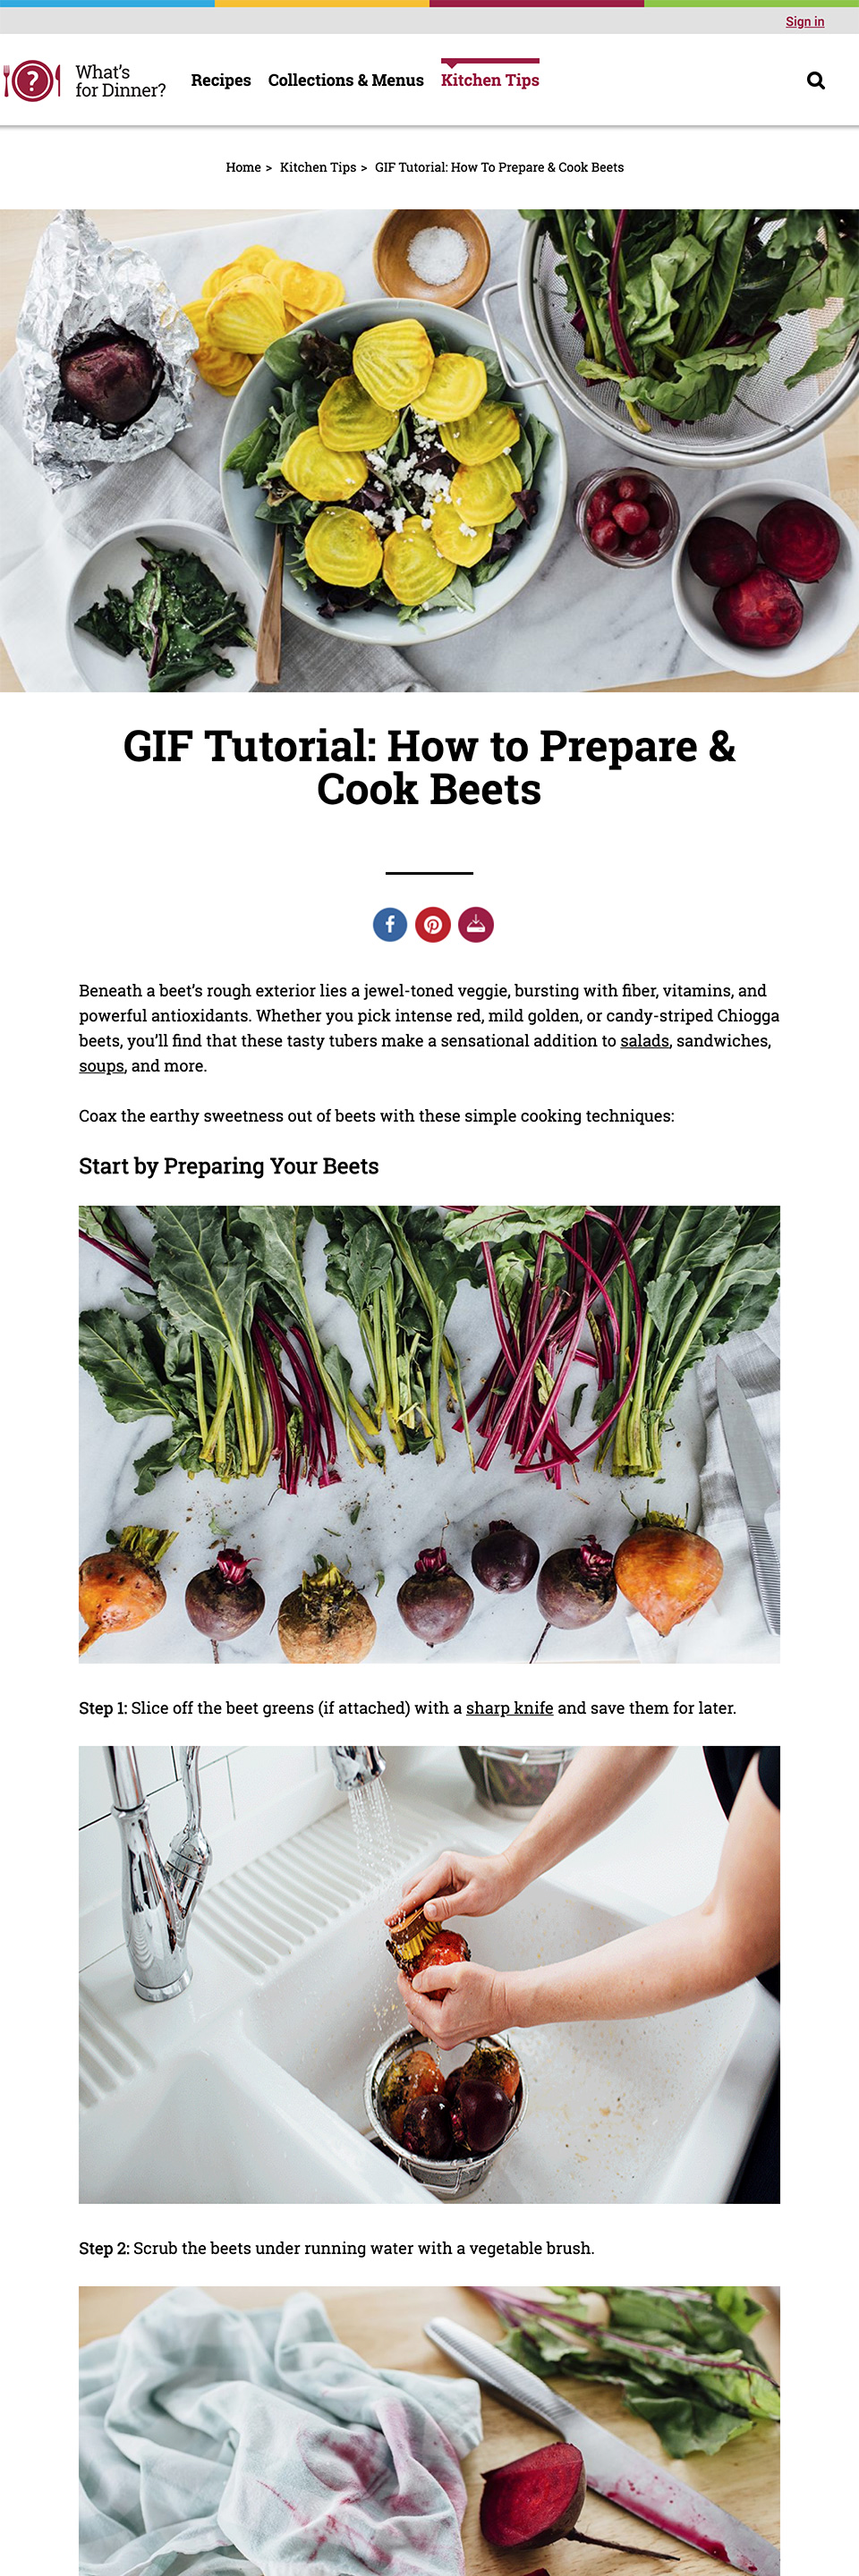 Whats-For-Dinner--GIF-Tutorial-How-to-Prepare-Cook-Beets